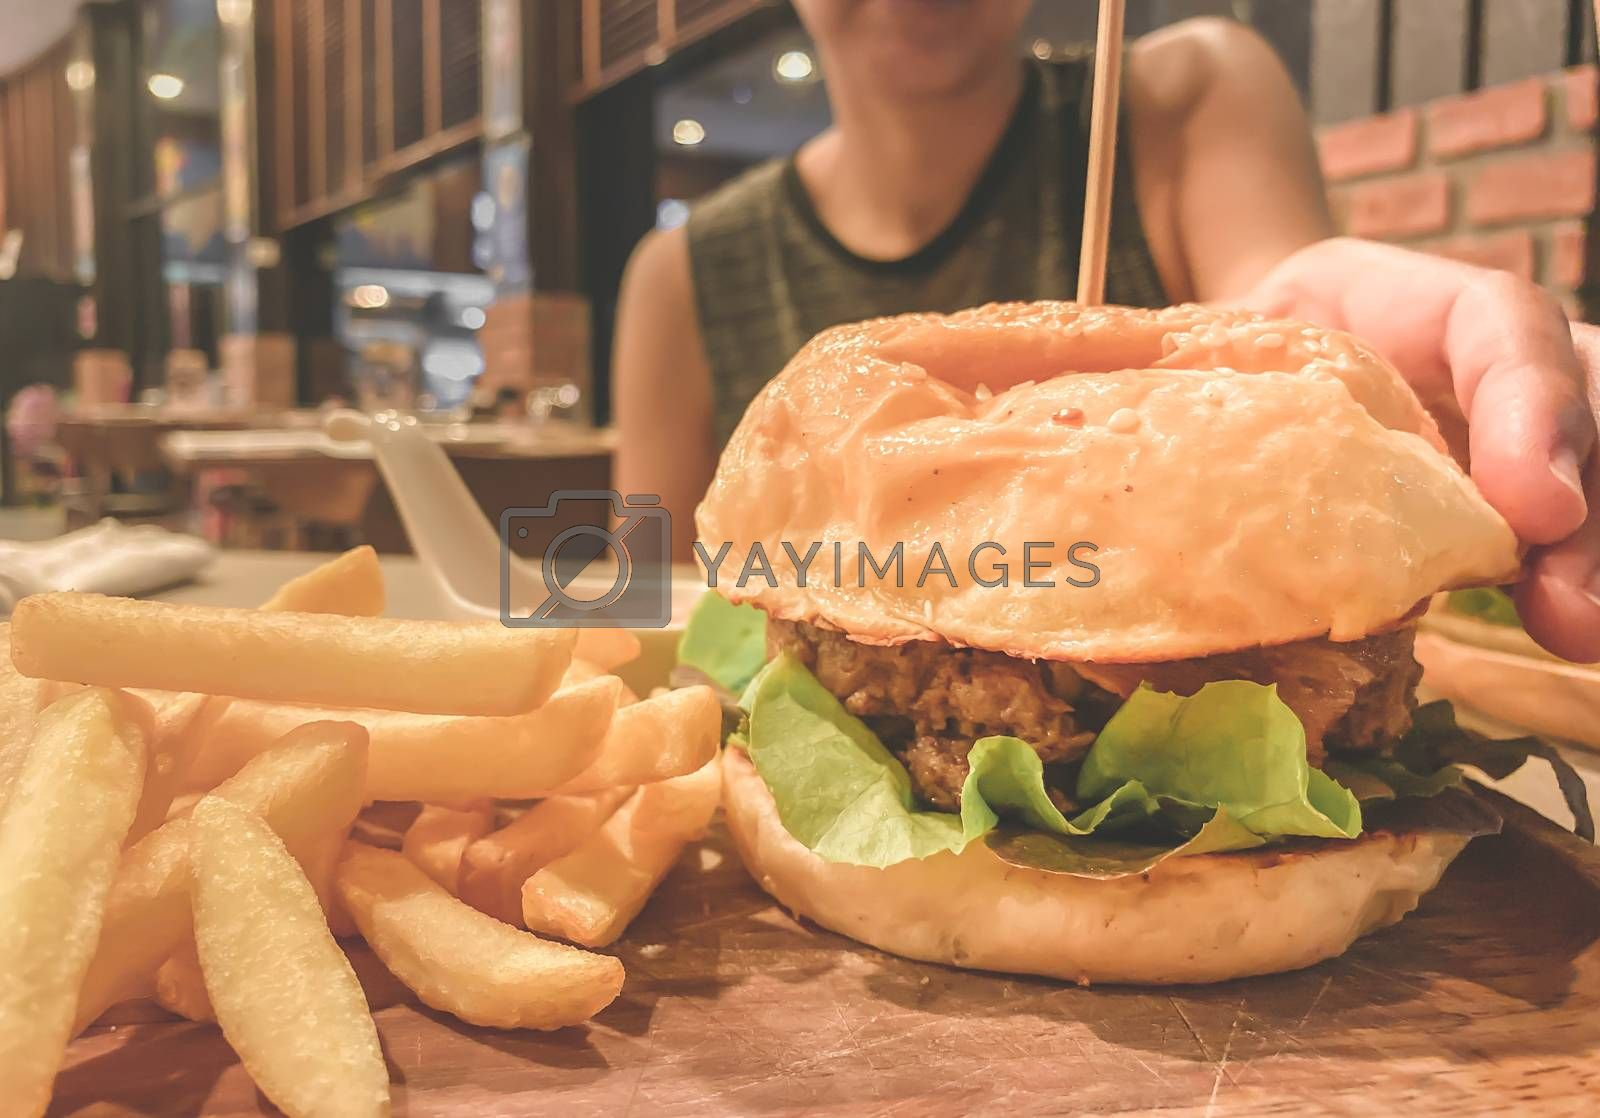 Woman trying to pick up hamburger and french fries on the wood table.Junk food and cholesterol. Close up and blur.